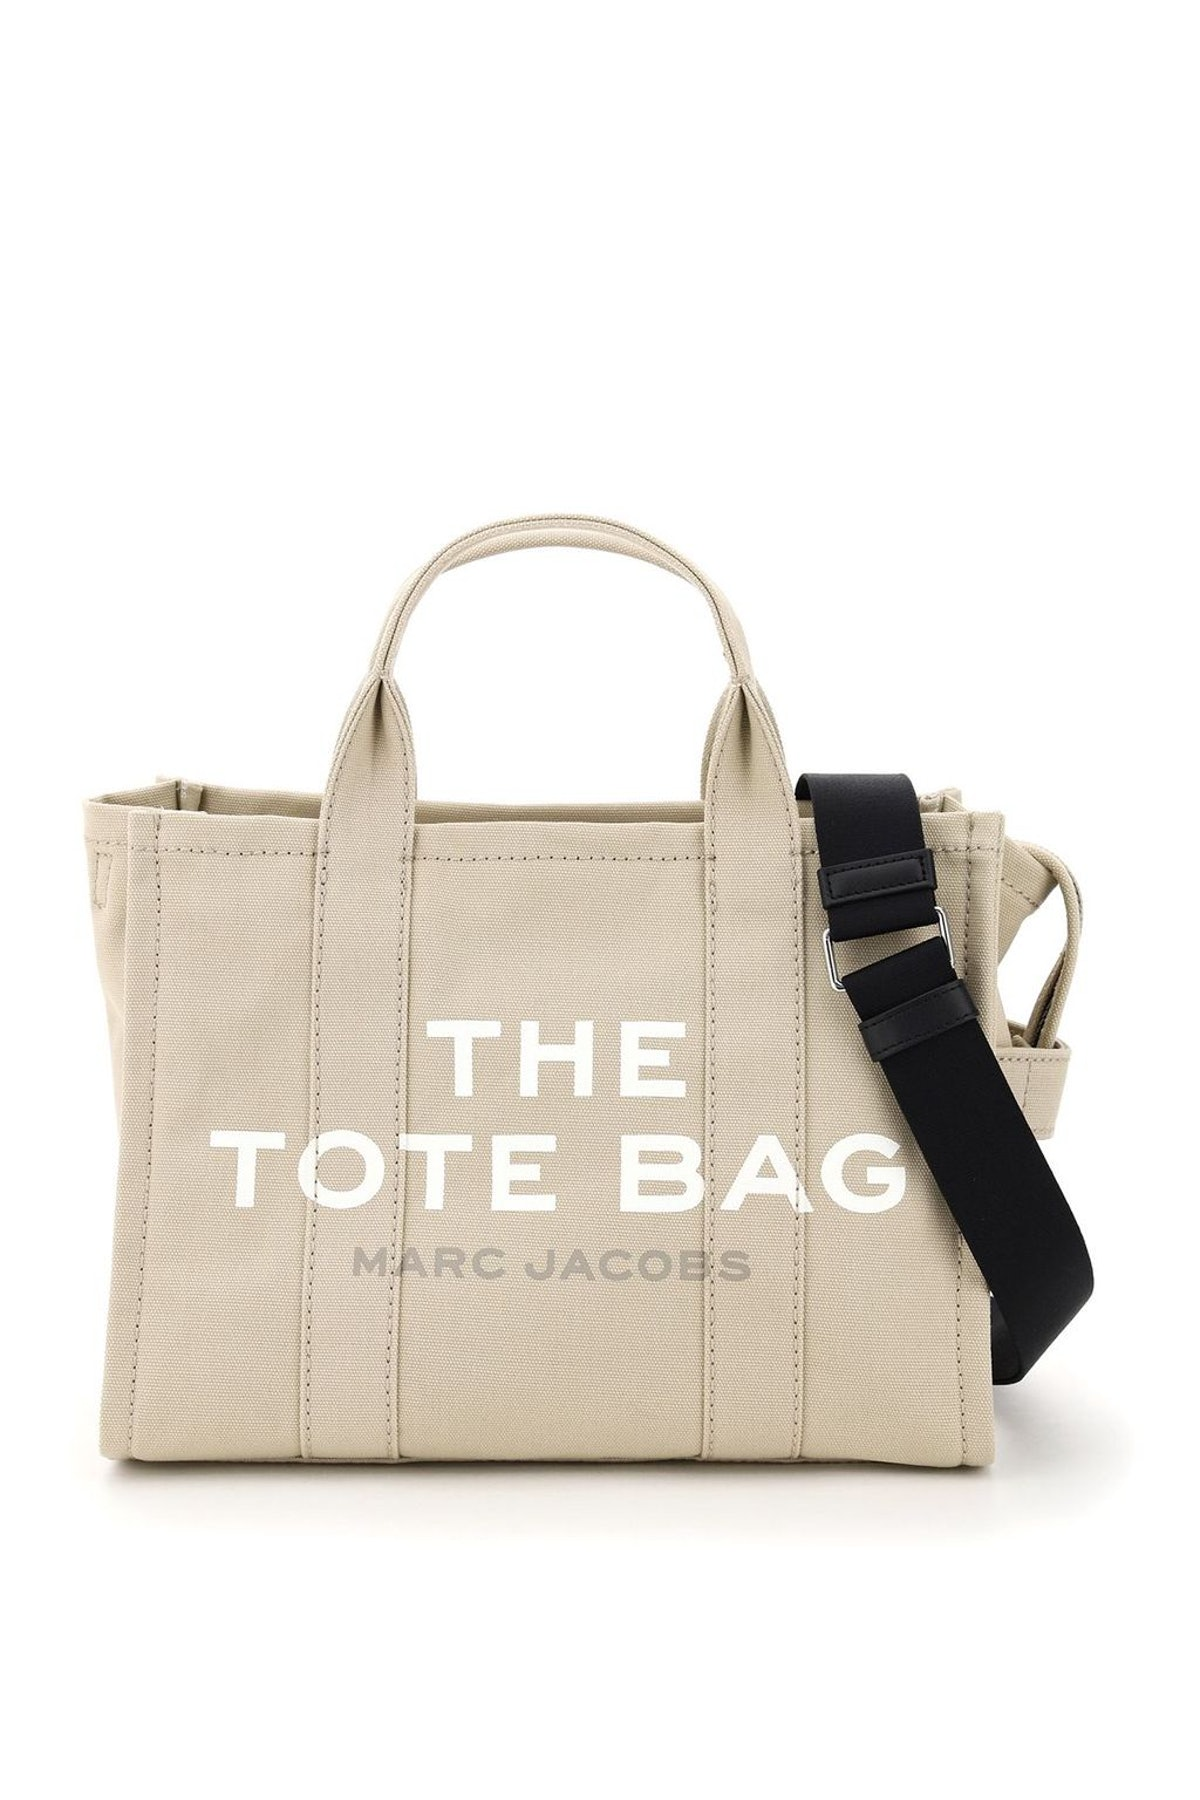 Marc Jacobs The Small Traveler Tote Bag: additional image